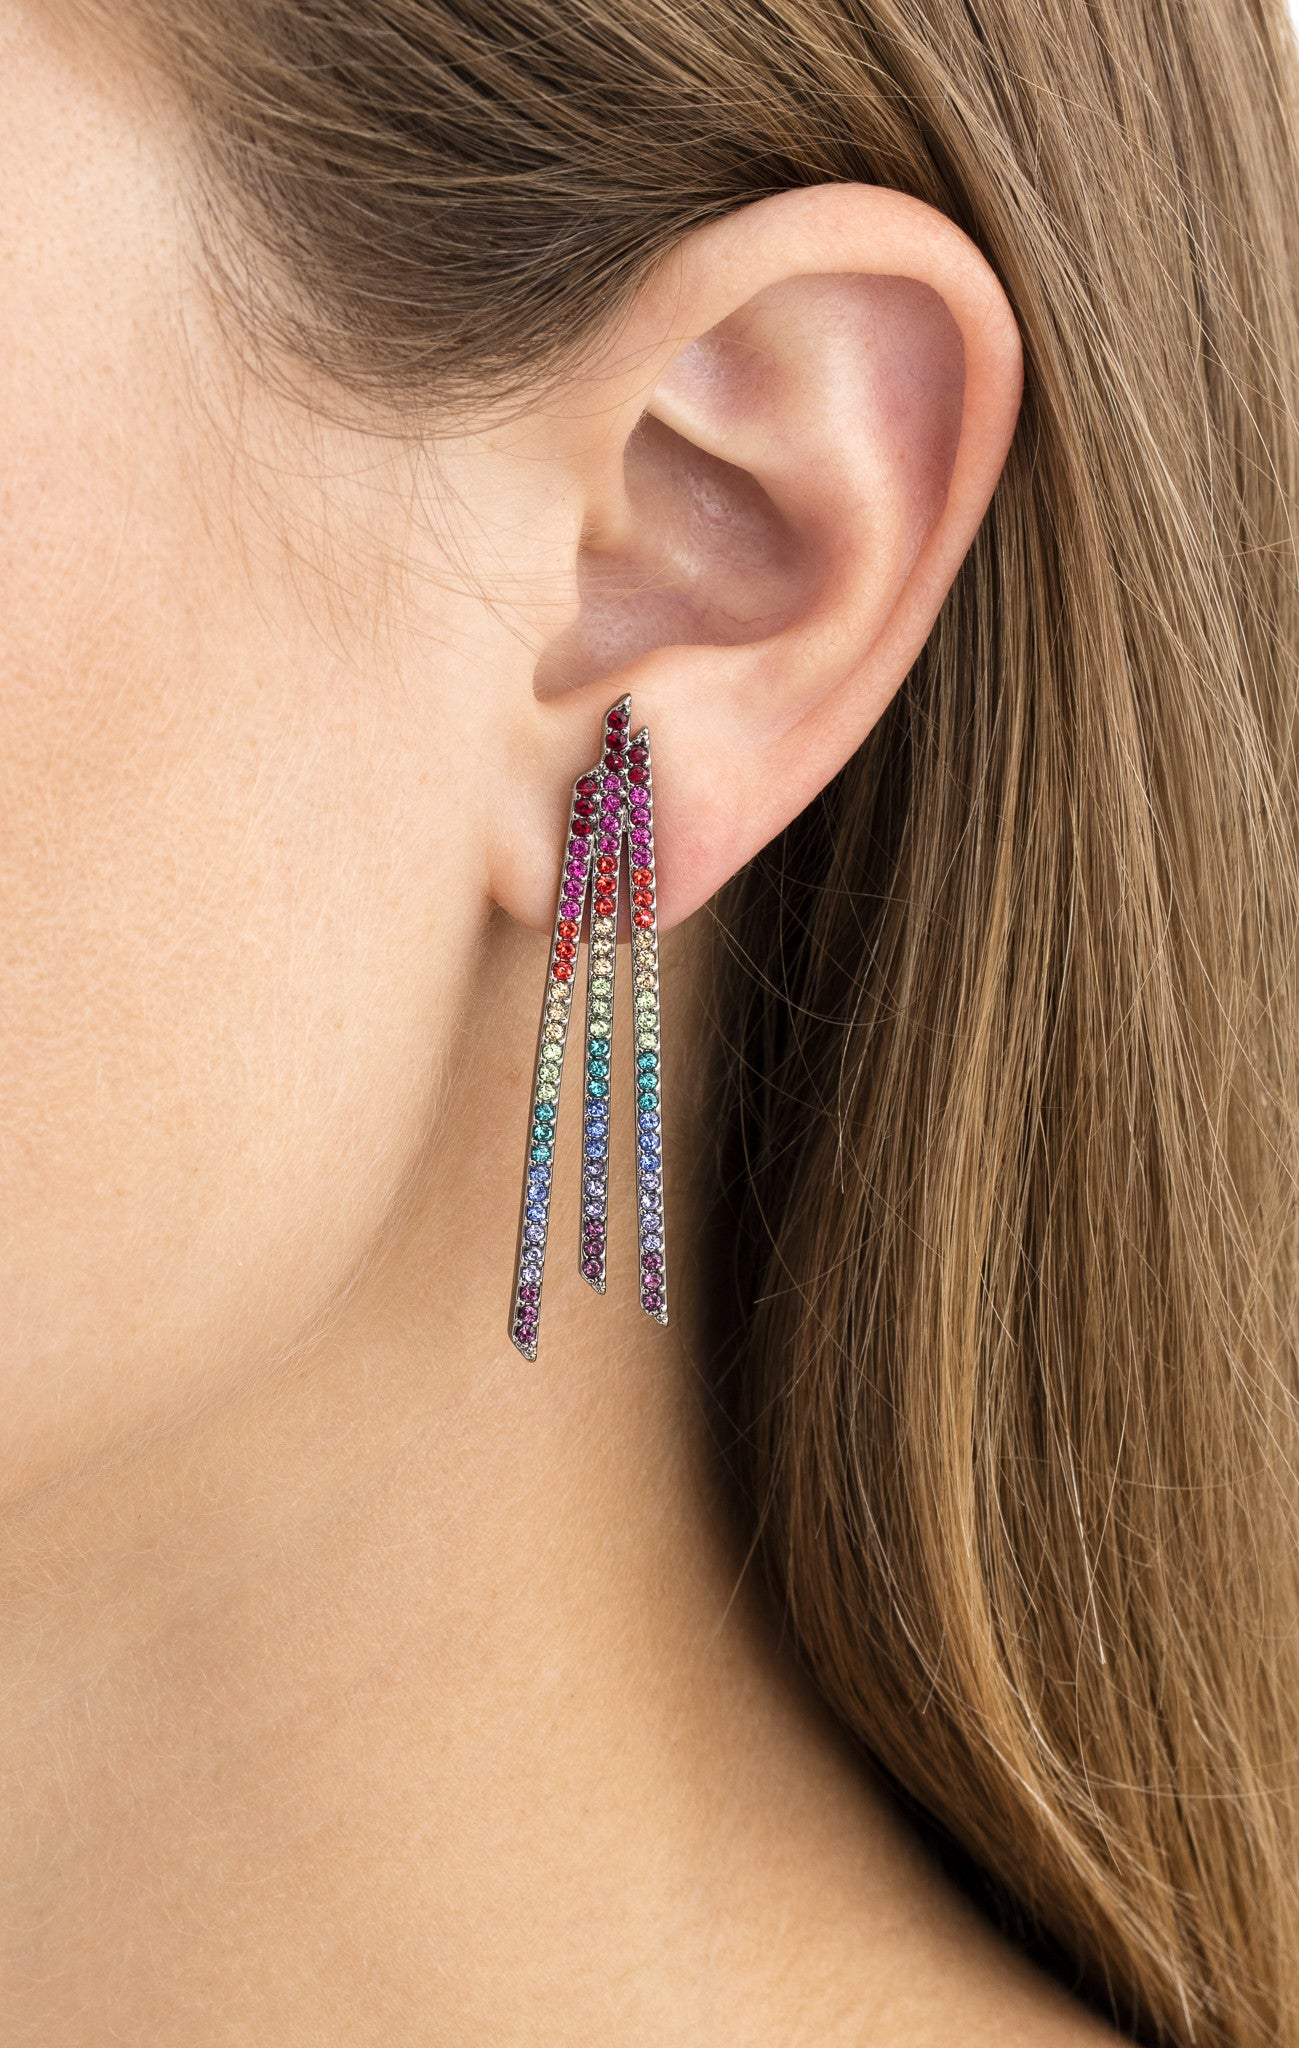 Prism Ear Jackets by Sarah Magid Jewelry